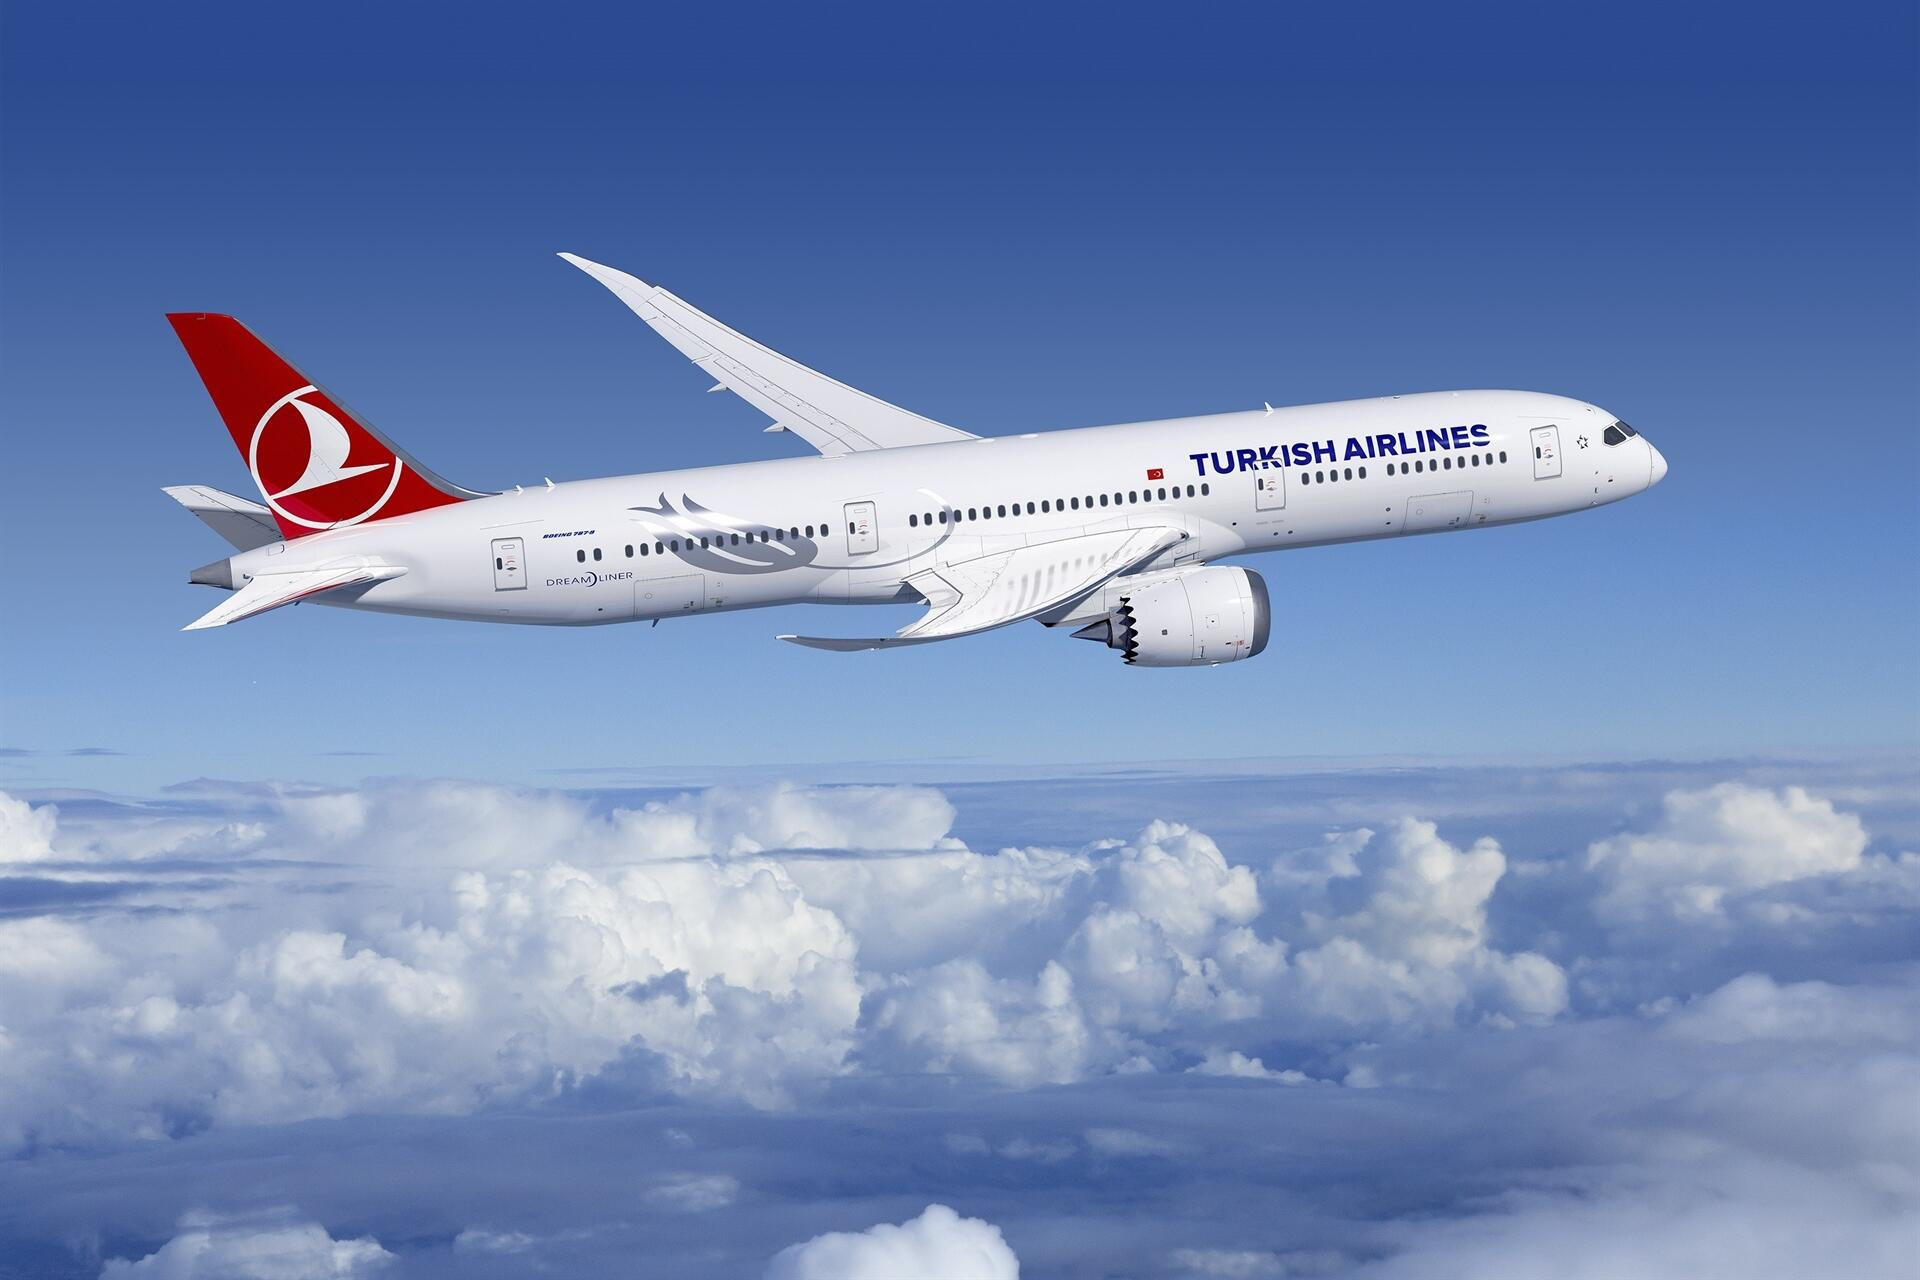 HOW TURKISH AIRLINES WON LOYALTY THROUGH CUSTOMER SERVICE